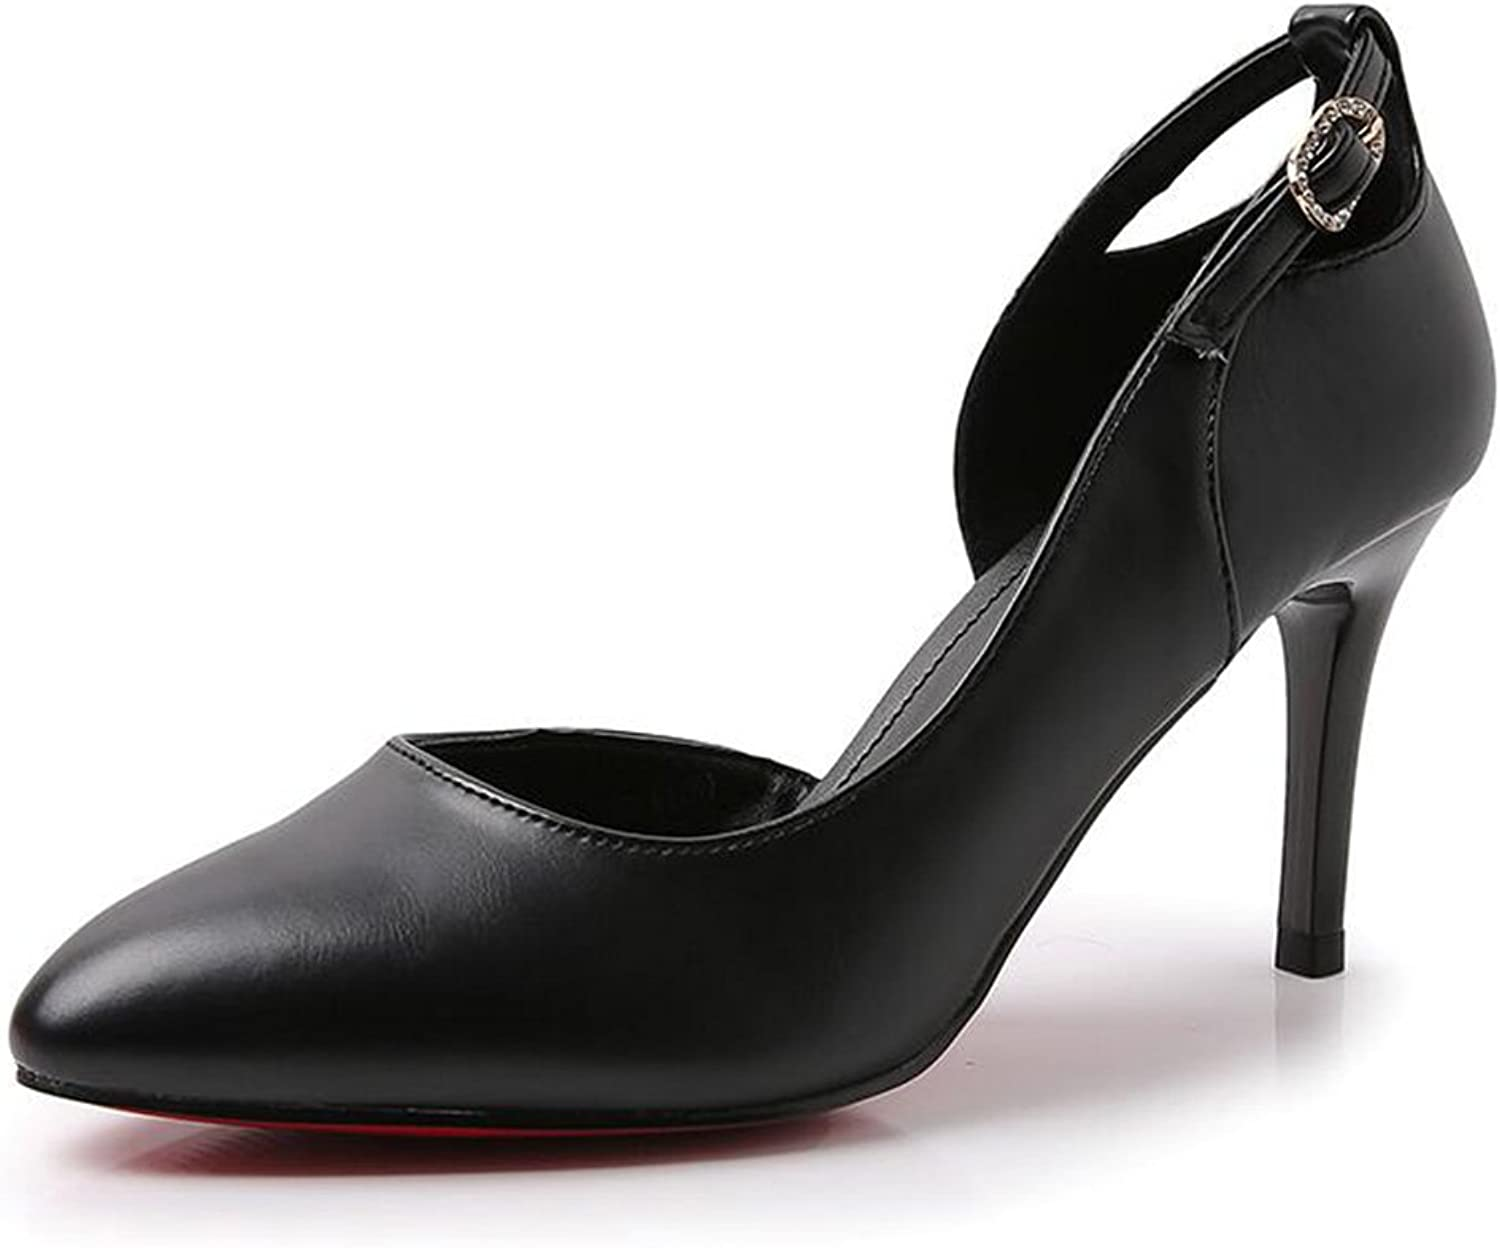 Jinsen Spring Korean High Heel Fine with Simple Fashion shoes shoes